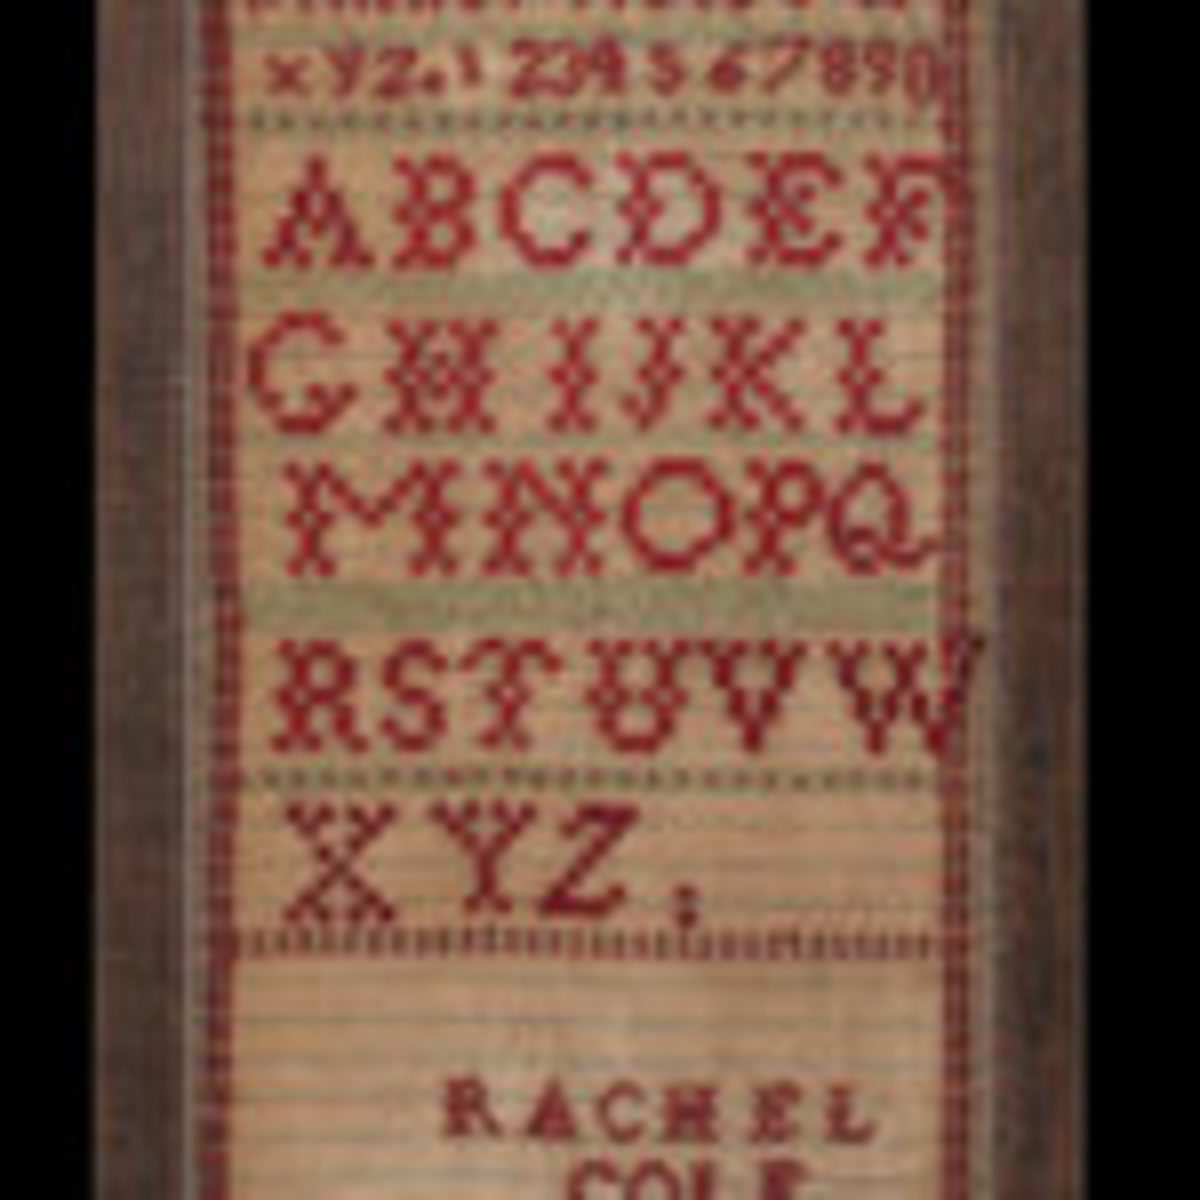 Alphabet Sampler, Rachel Cole (1854-1922), Chicago, Illinois; dated 1868, wool embroidery threads on a cotton ground of 20 x 20 threads per inch, Museum Purchase, 2018.608.1